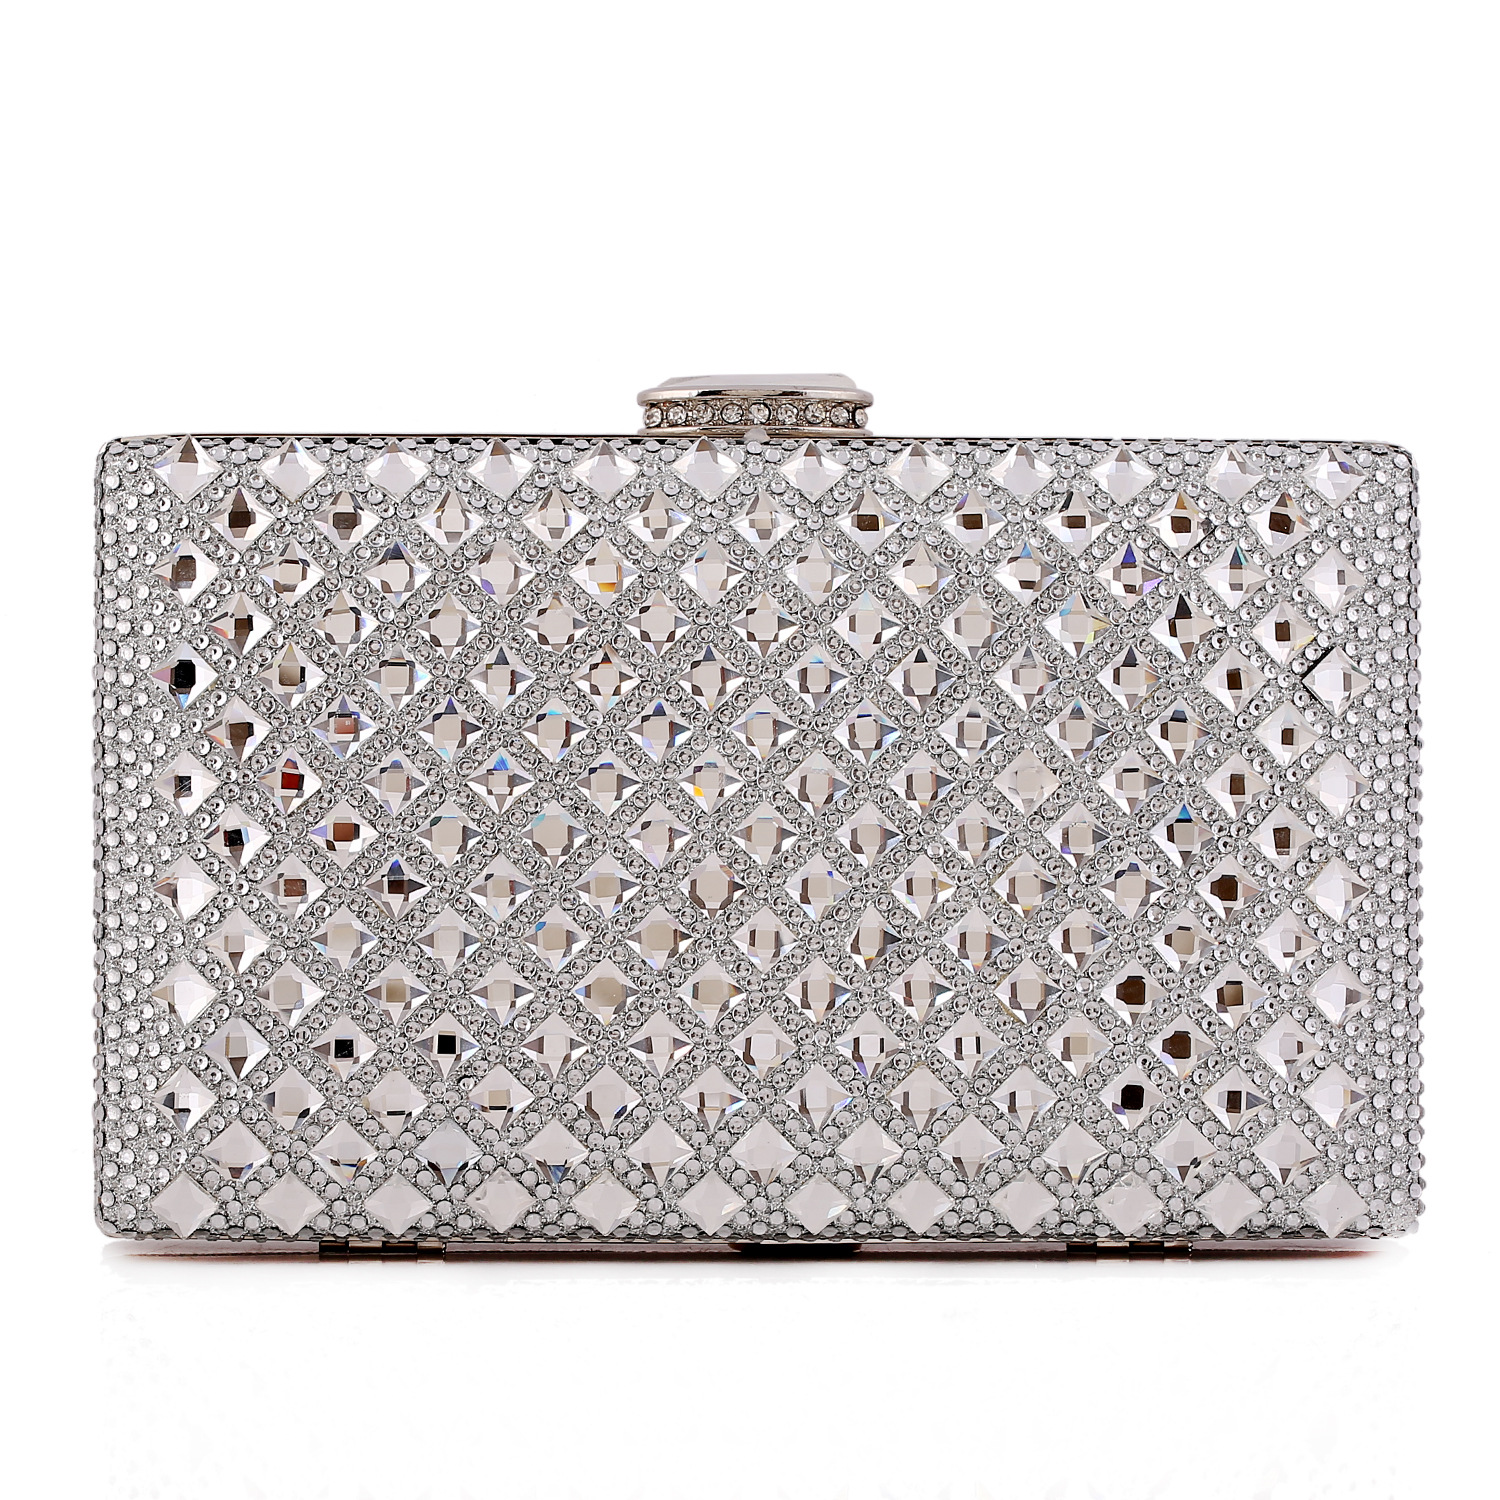 New Diamond Shiny Clutch Dress Evening Party Package NHYG174737